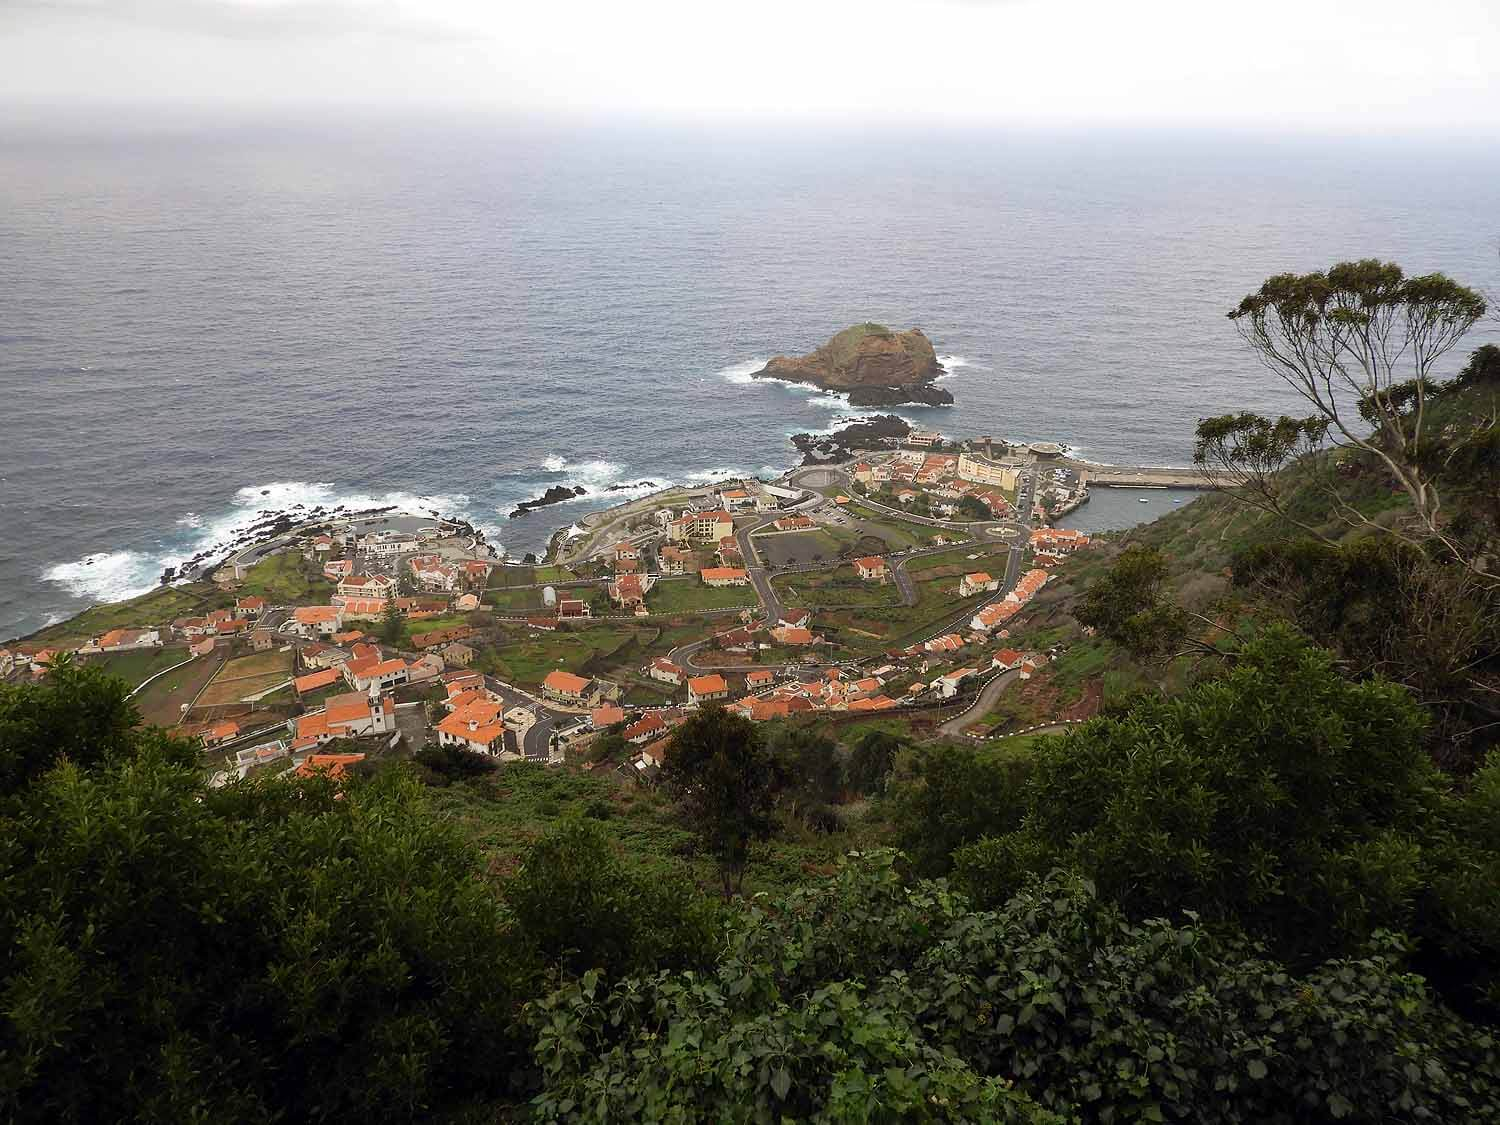 portugal-madeira-island-porto-muniz-north-side-natural-swimming-pool-ocean-sea-shore-town-scenic-tourism.JPG